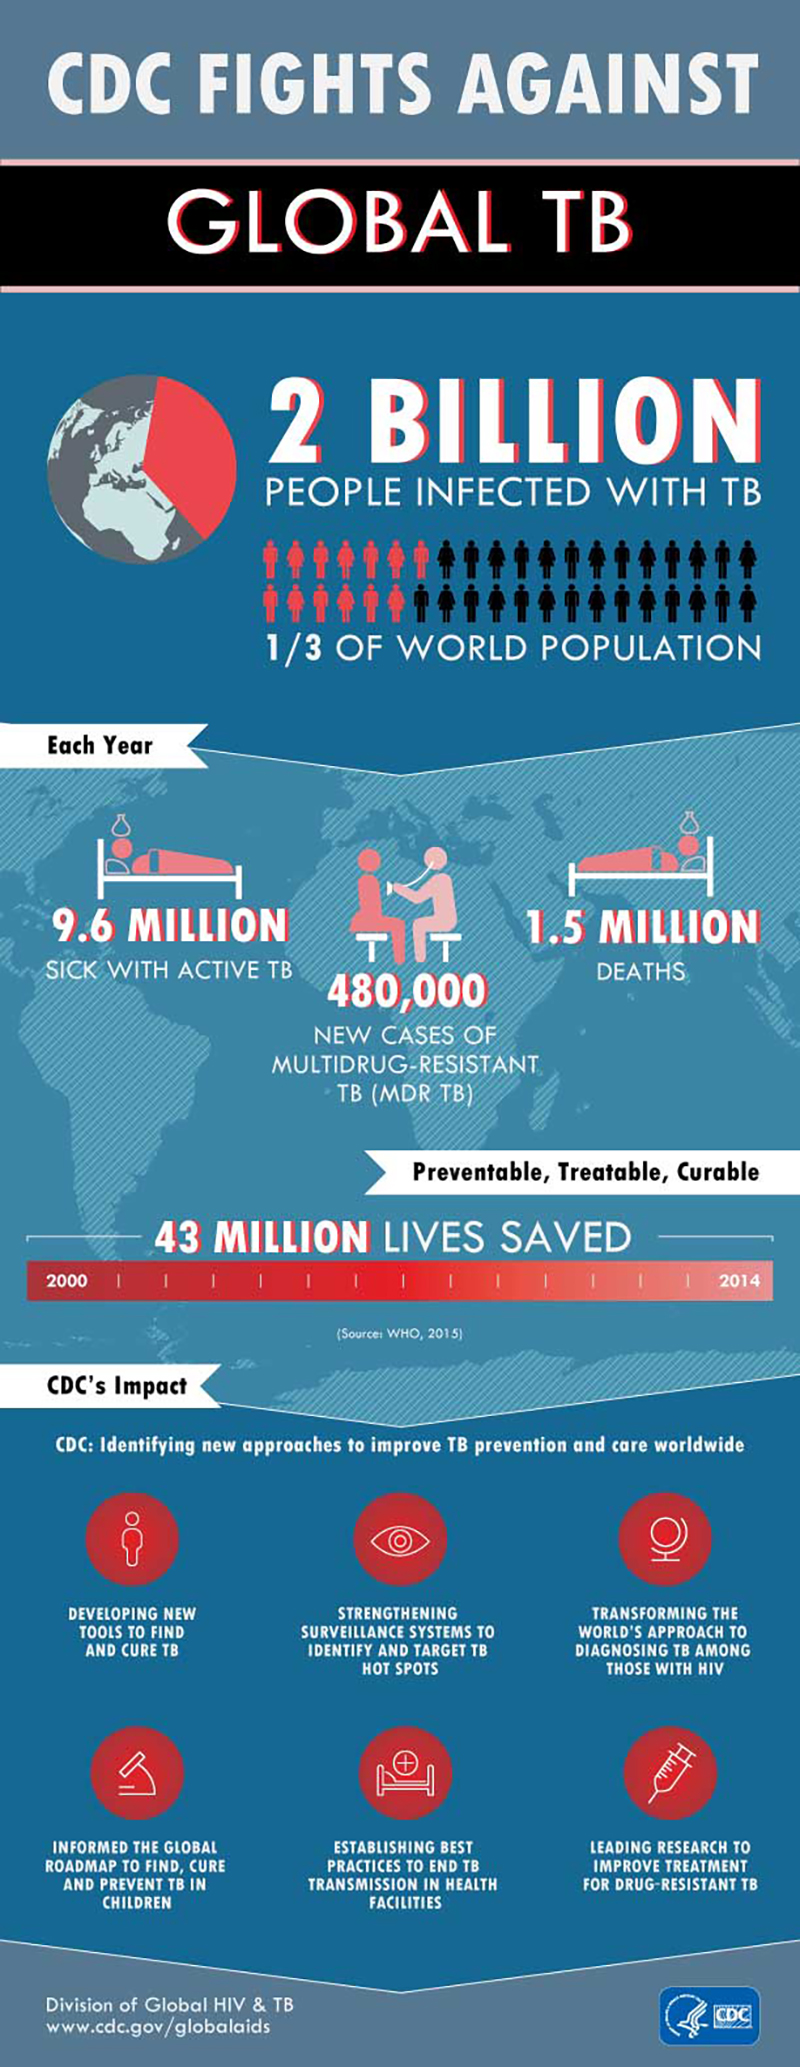 CDC Fights Against Global TB: 2 Billion People Infected With TB   1/3